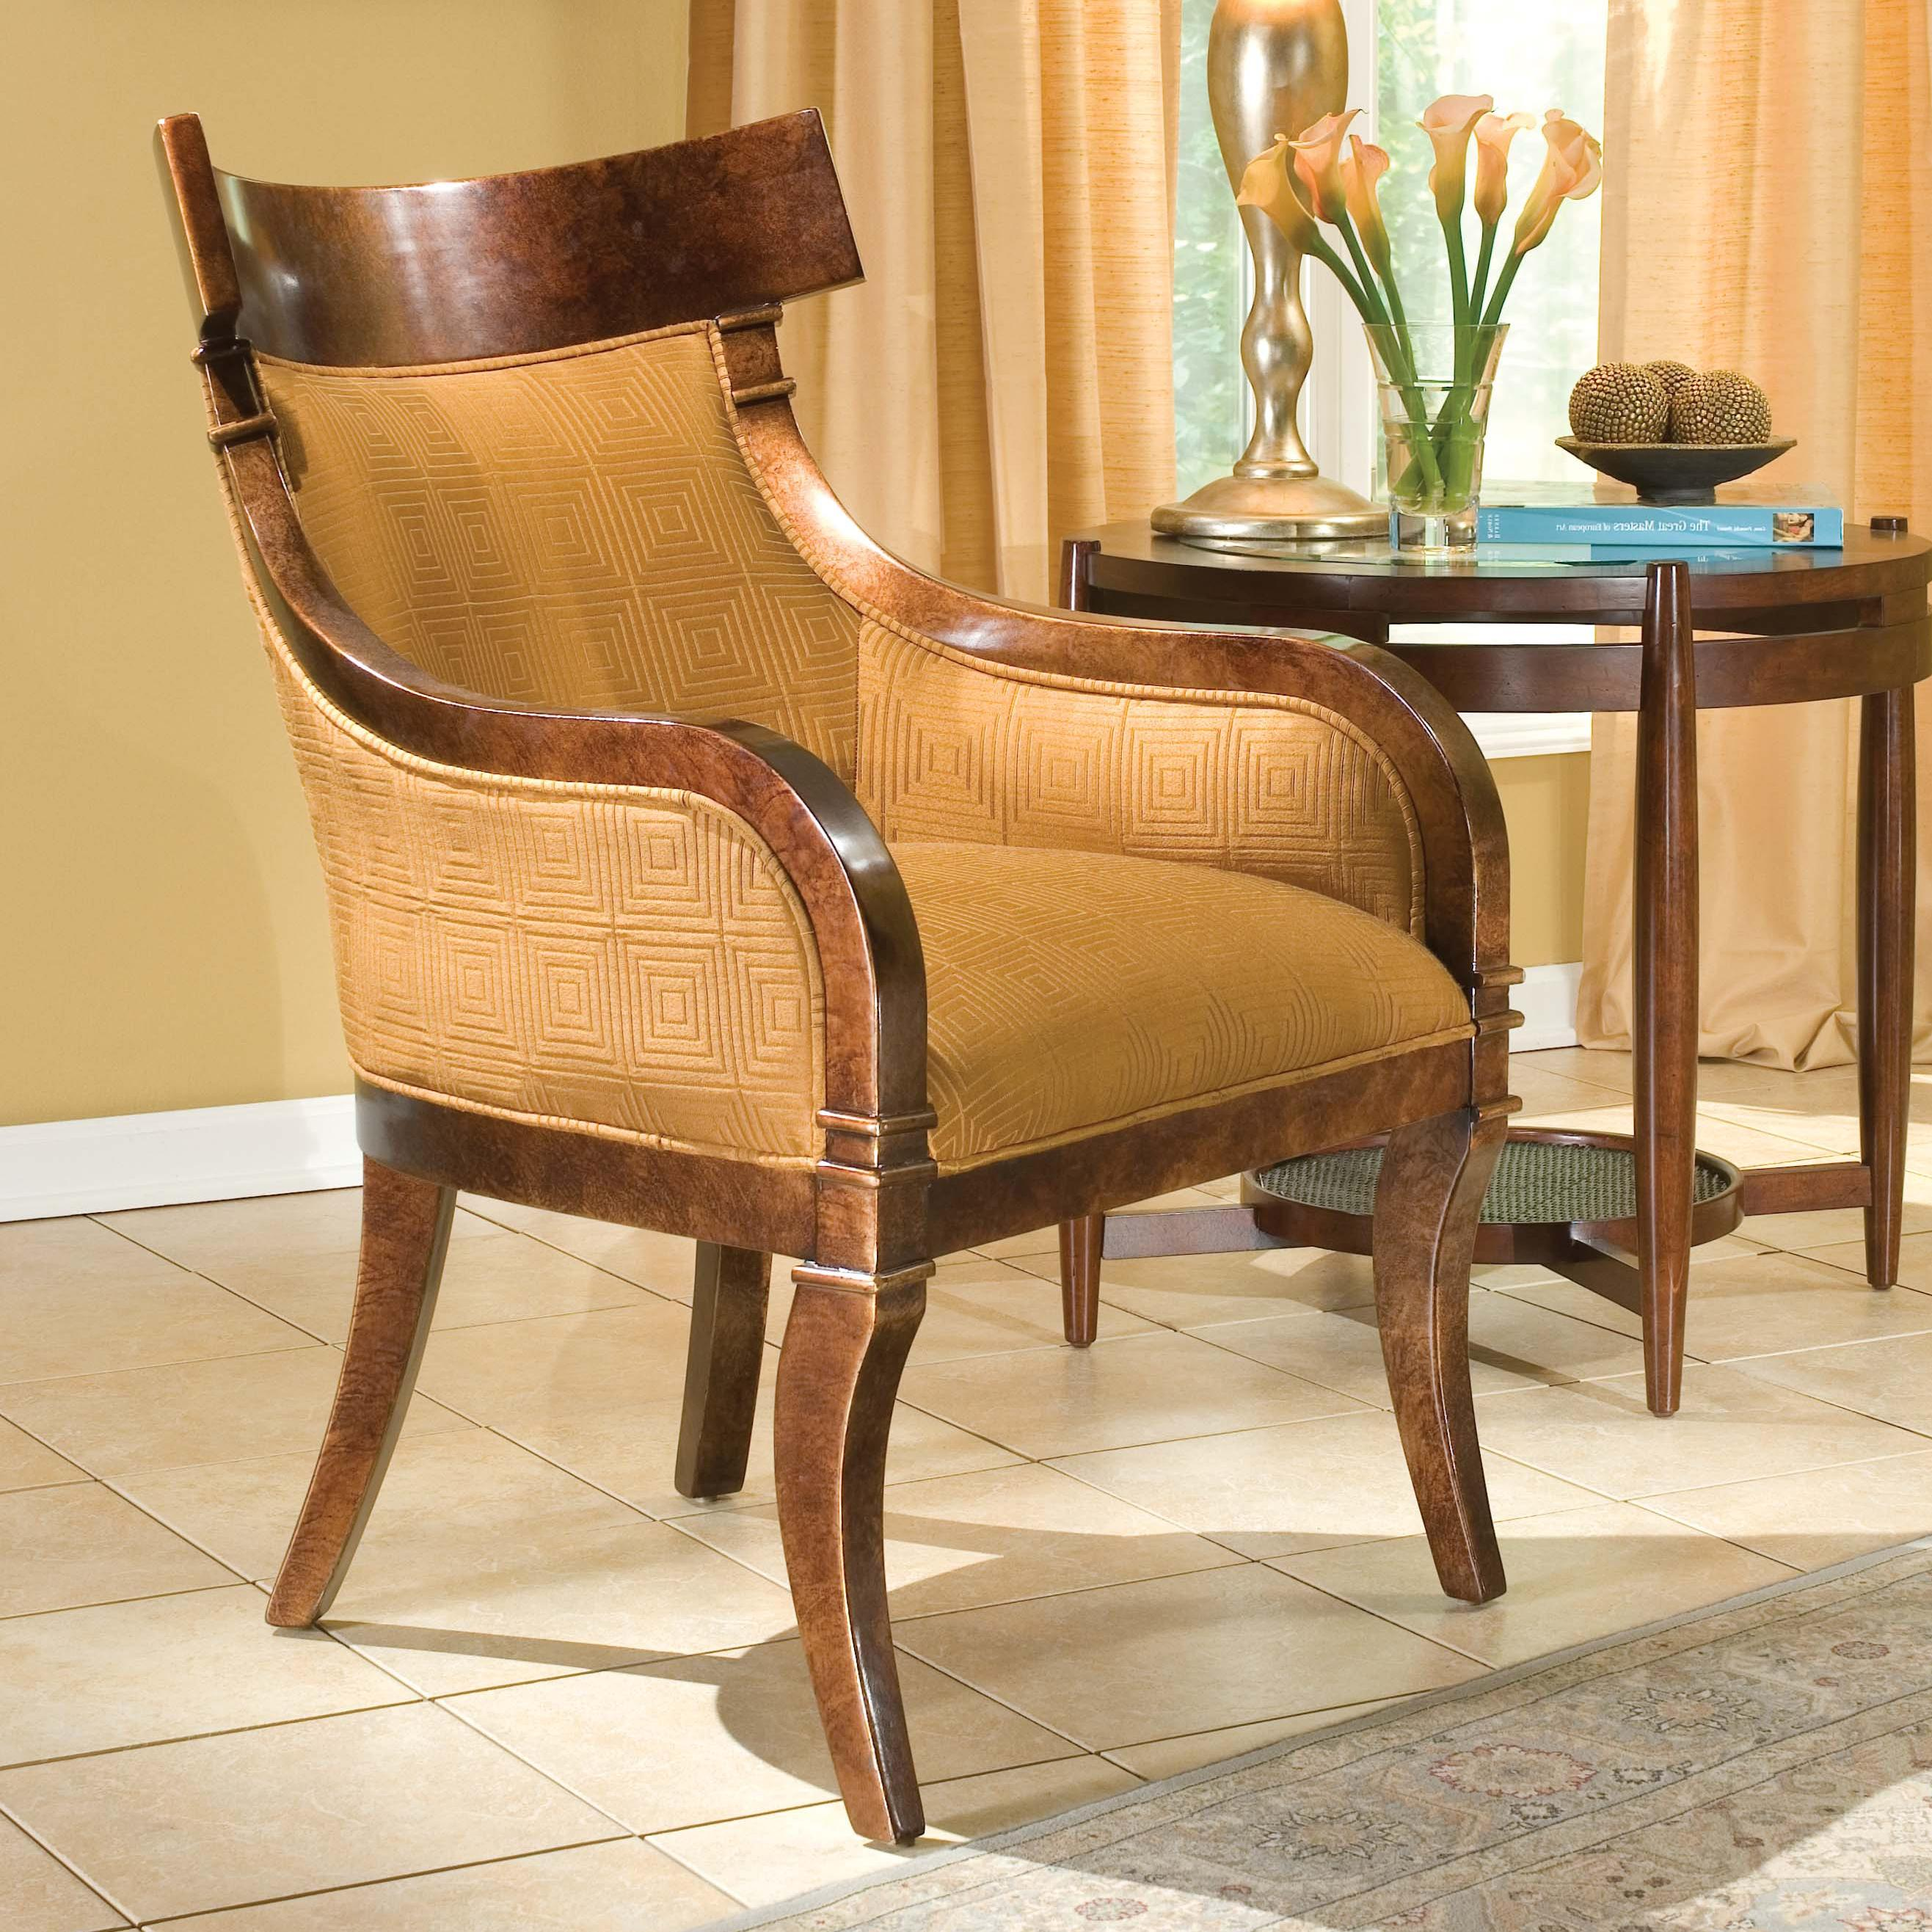 Grove Park Chairs Rustic Upholstered Accent Chair